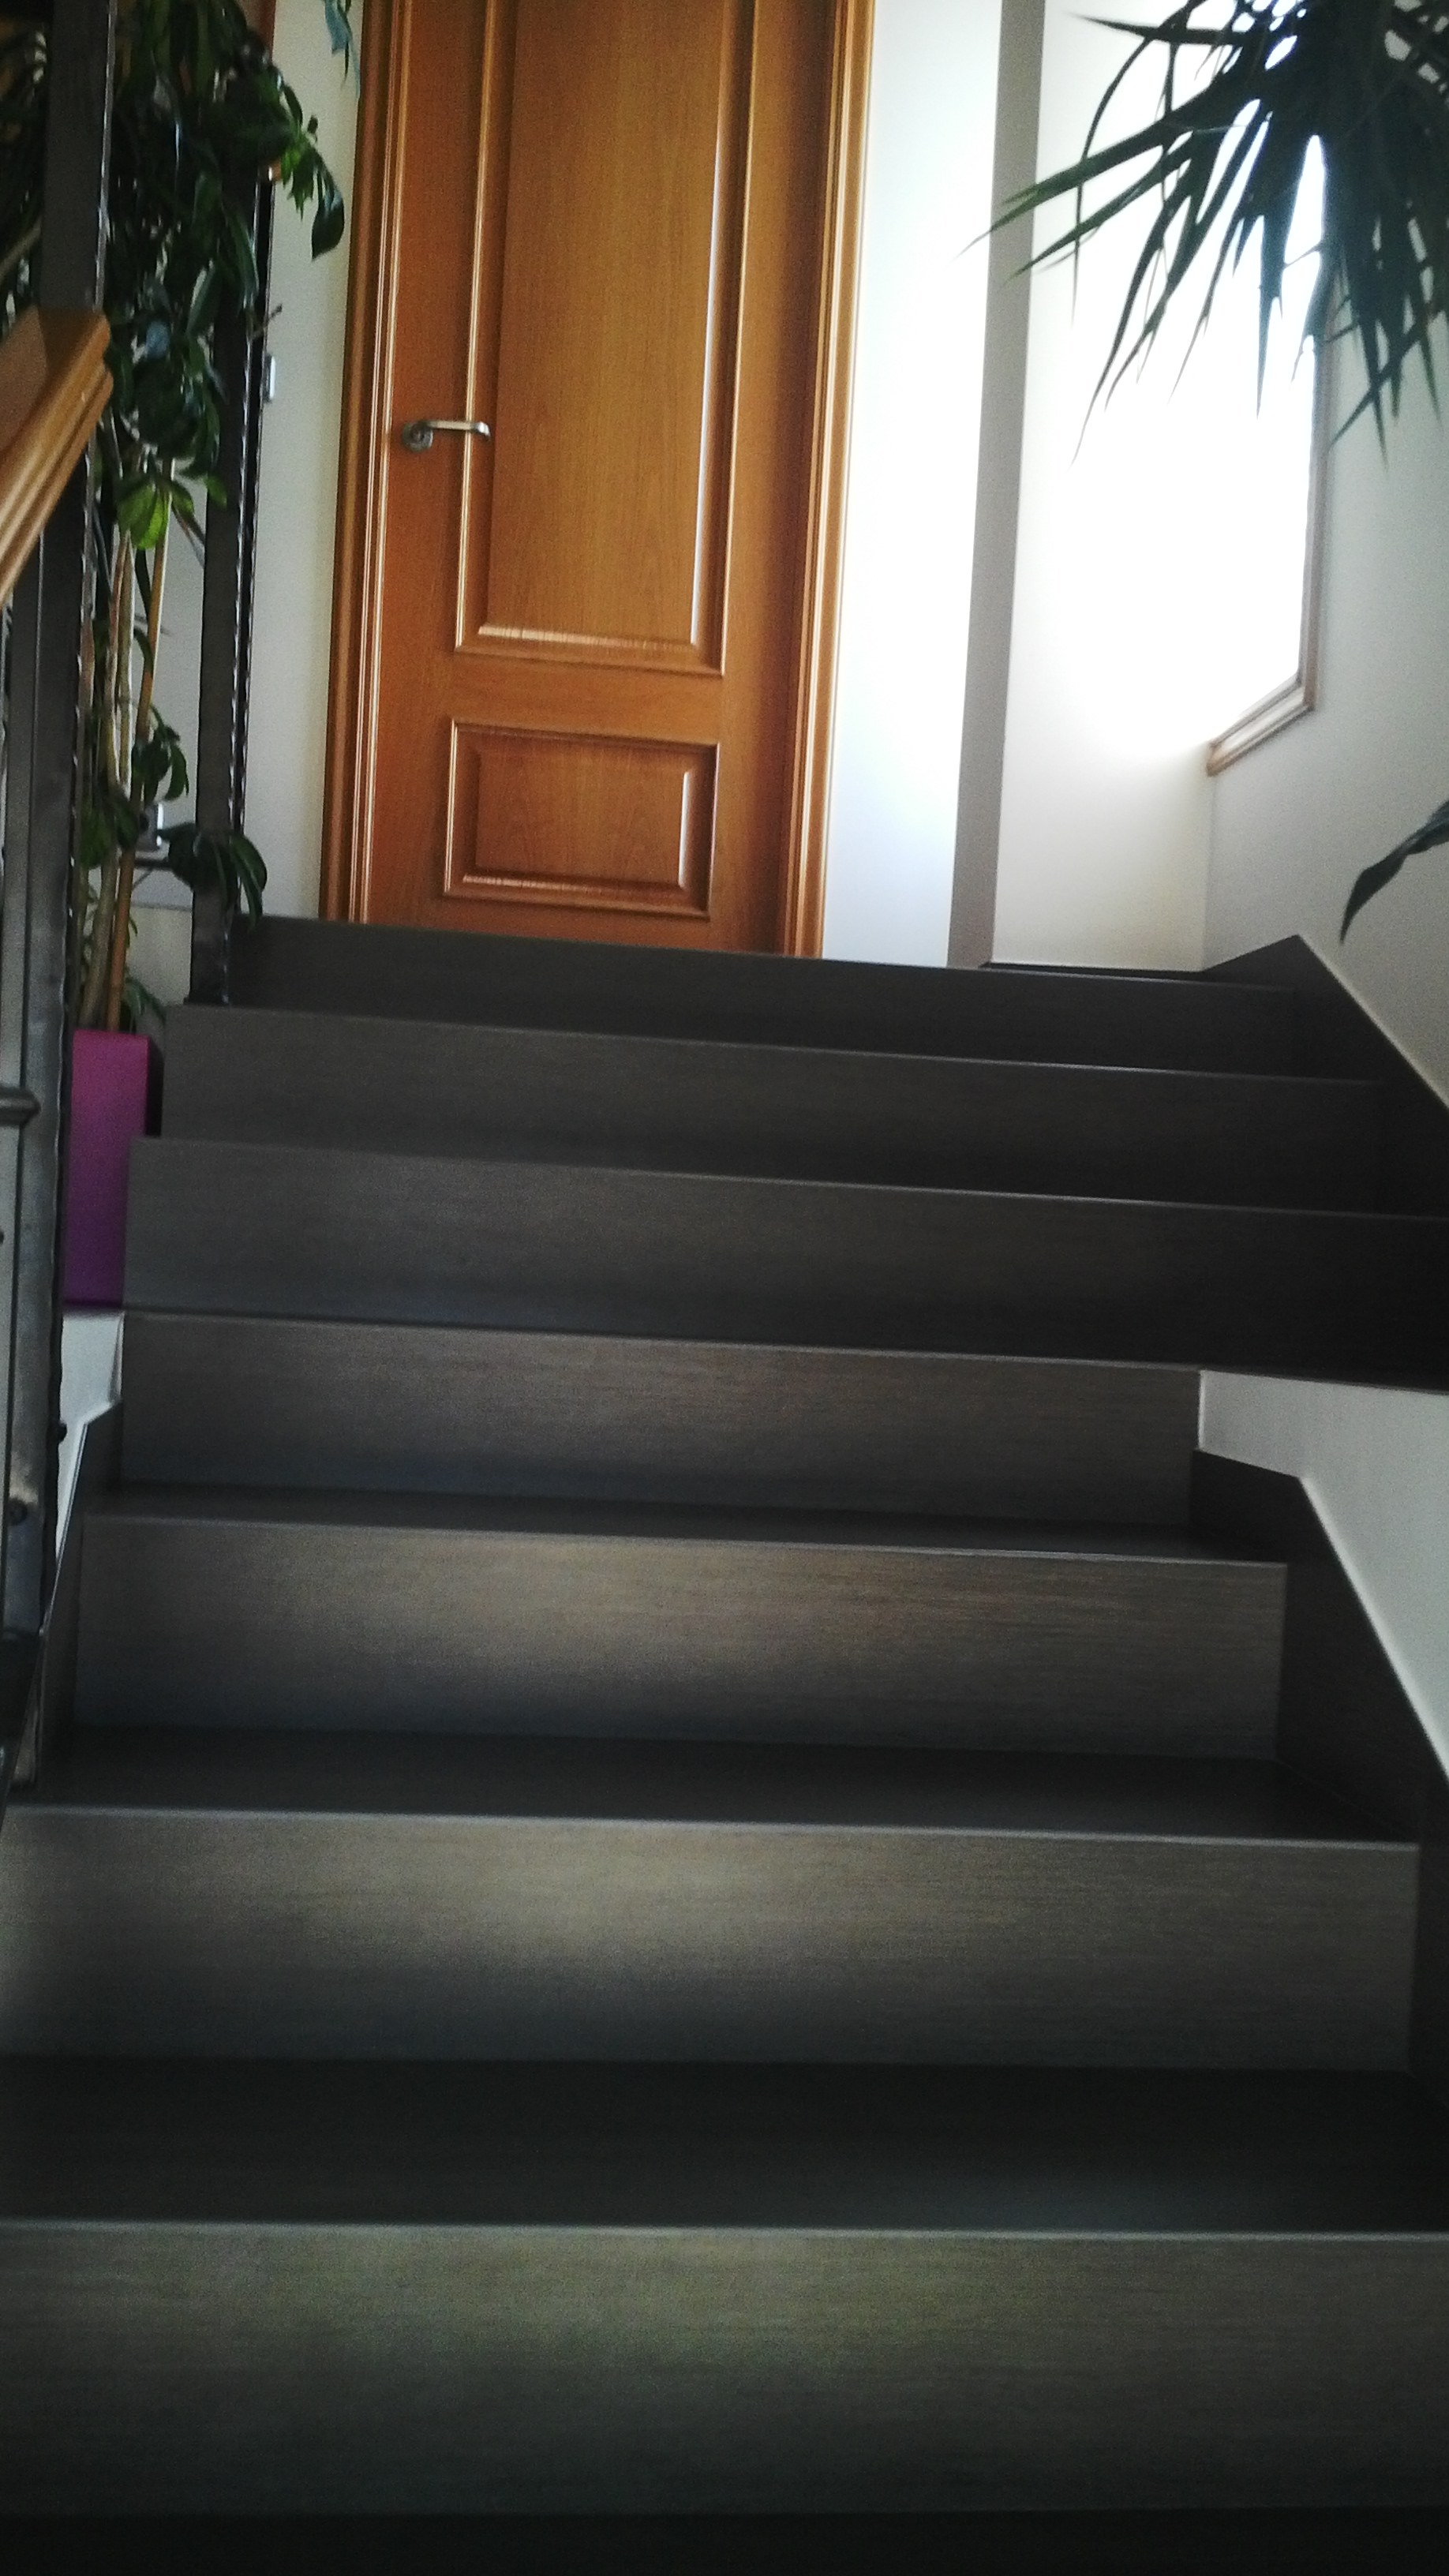 Escaleras en techlam